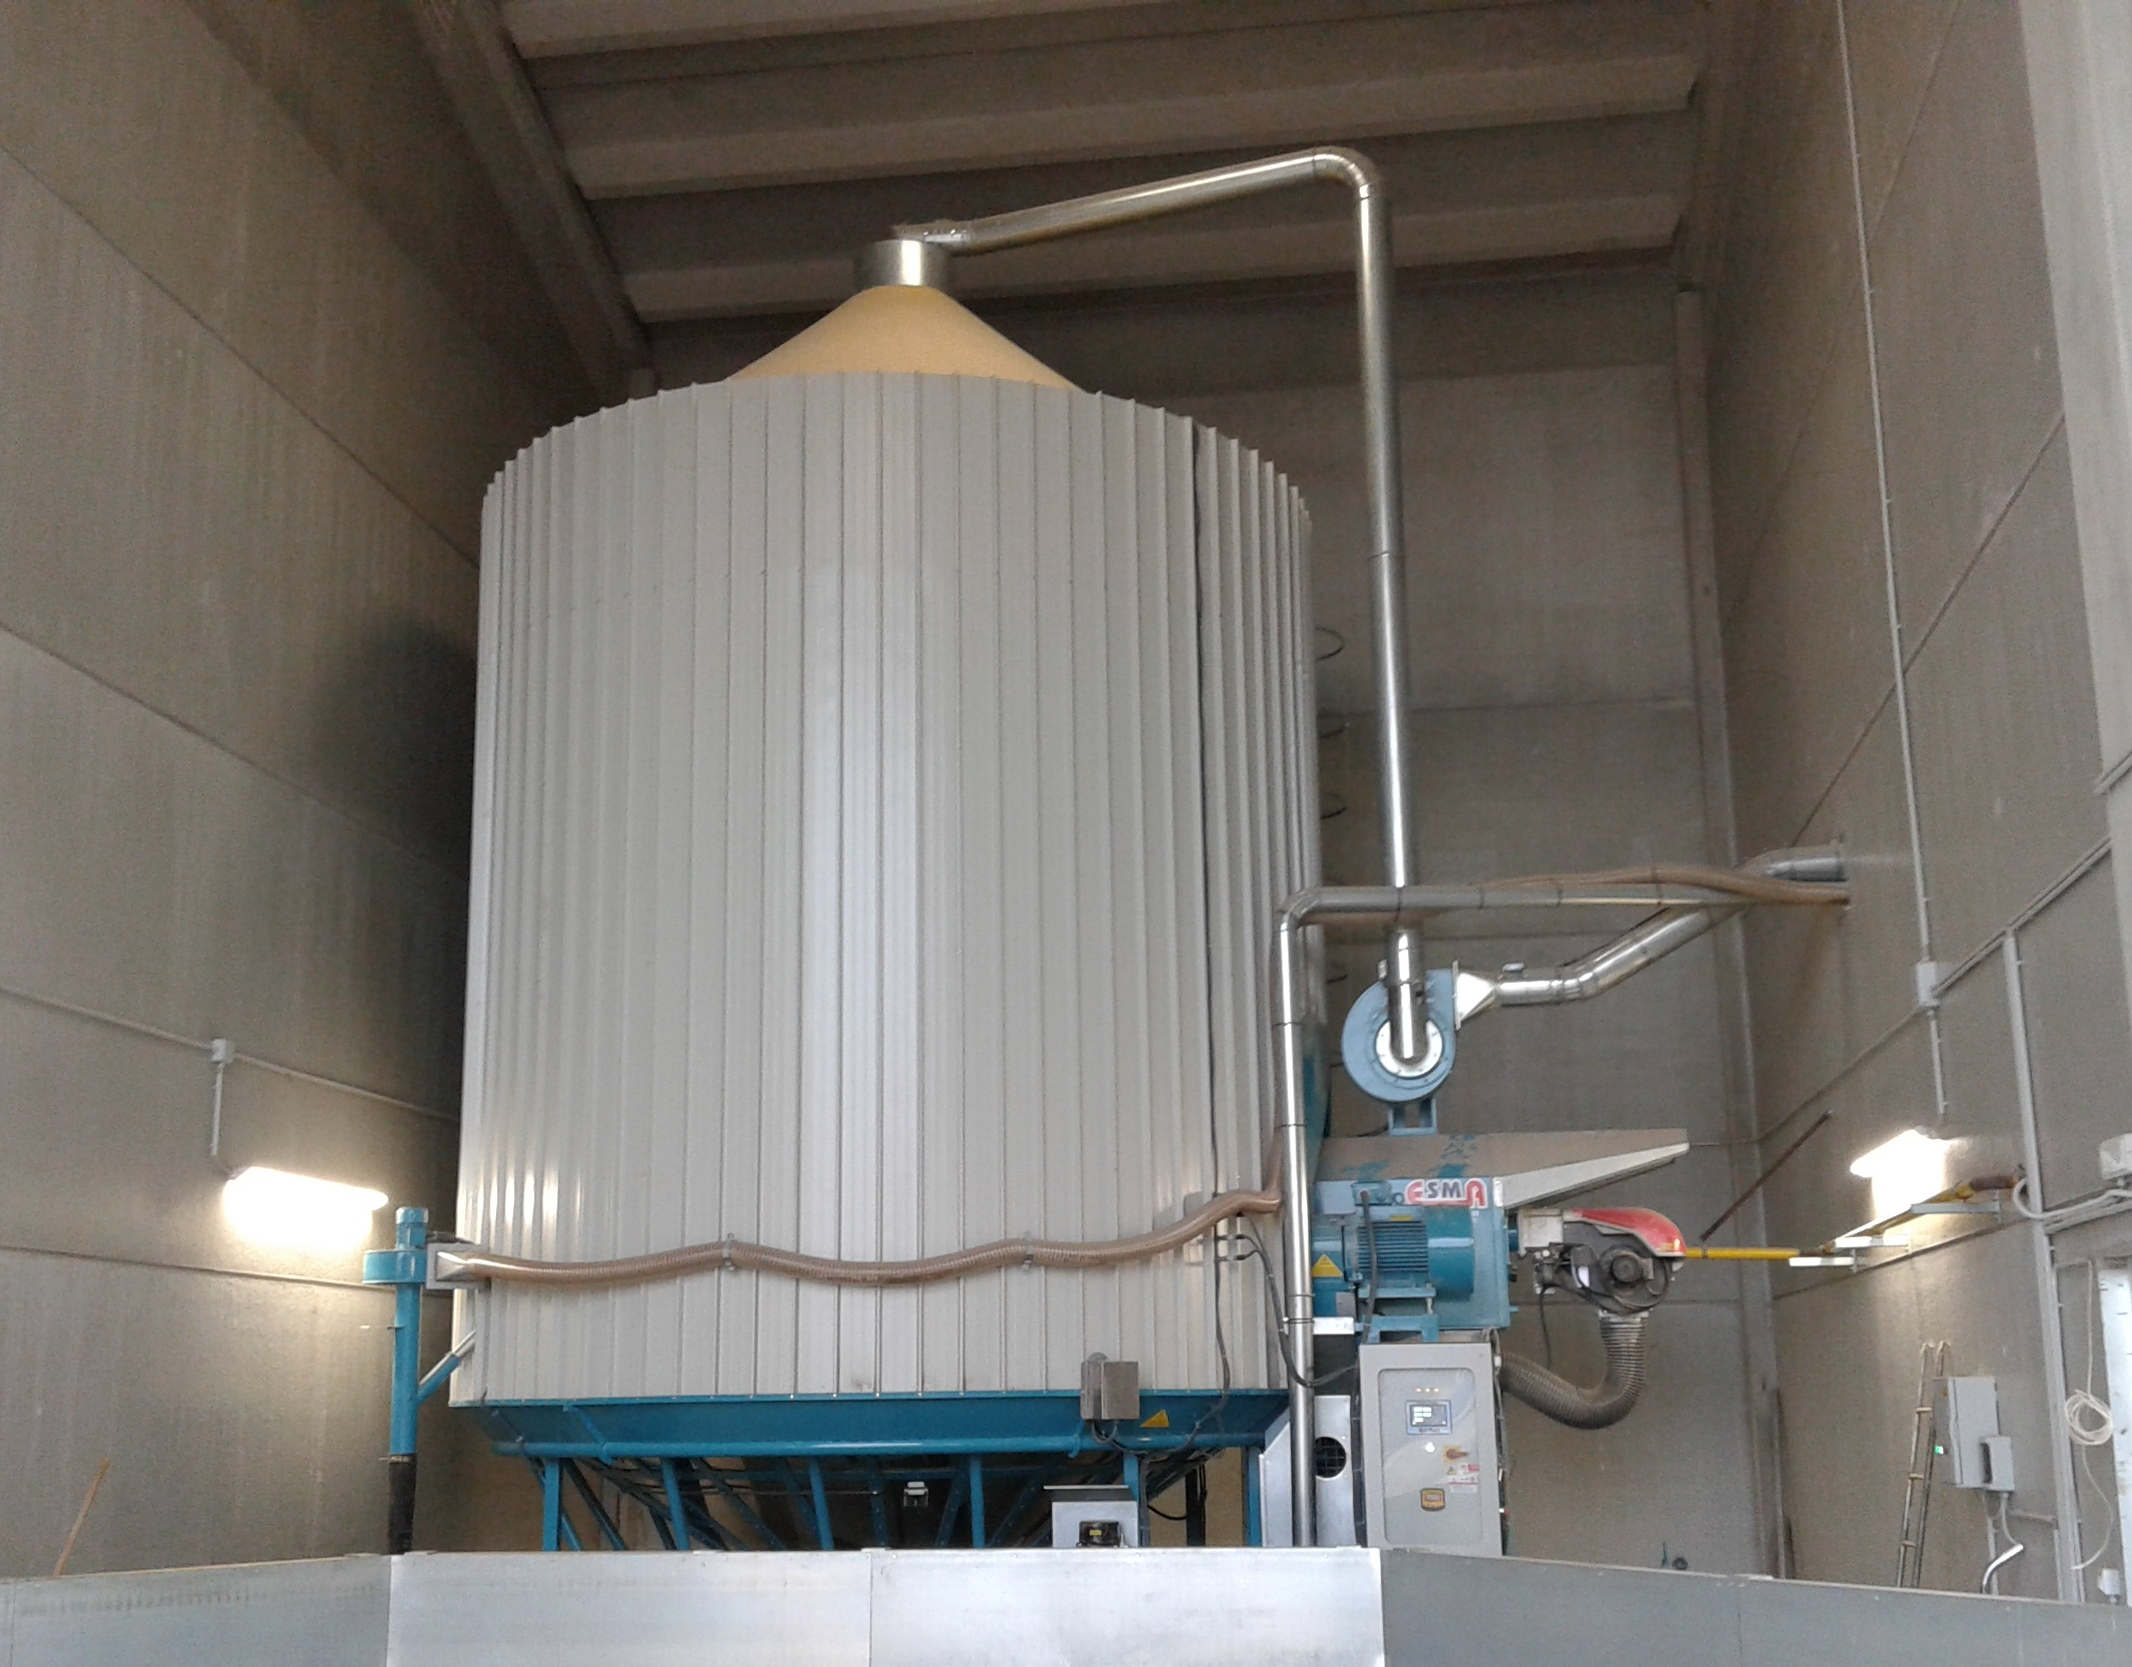 Esma grain dryers are selling all over Europe